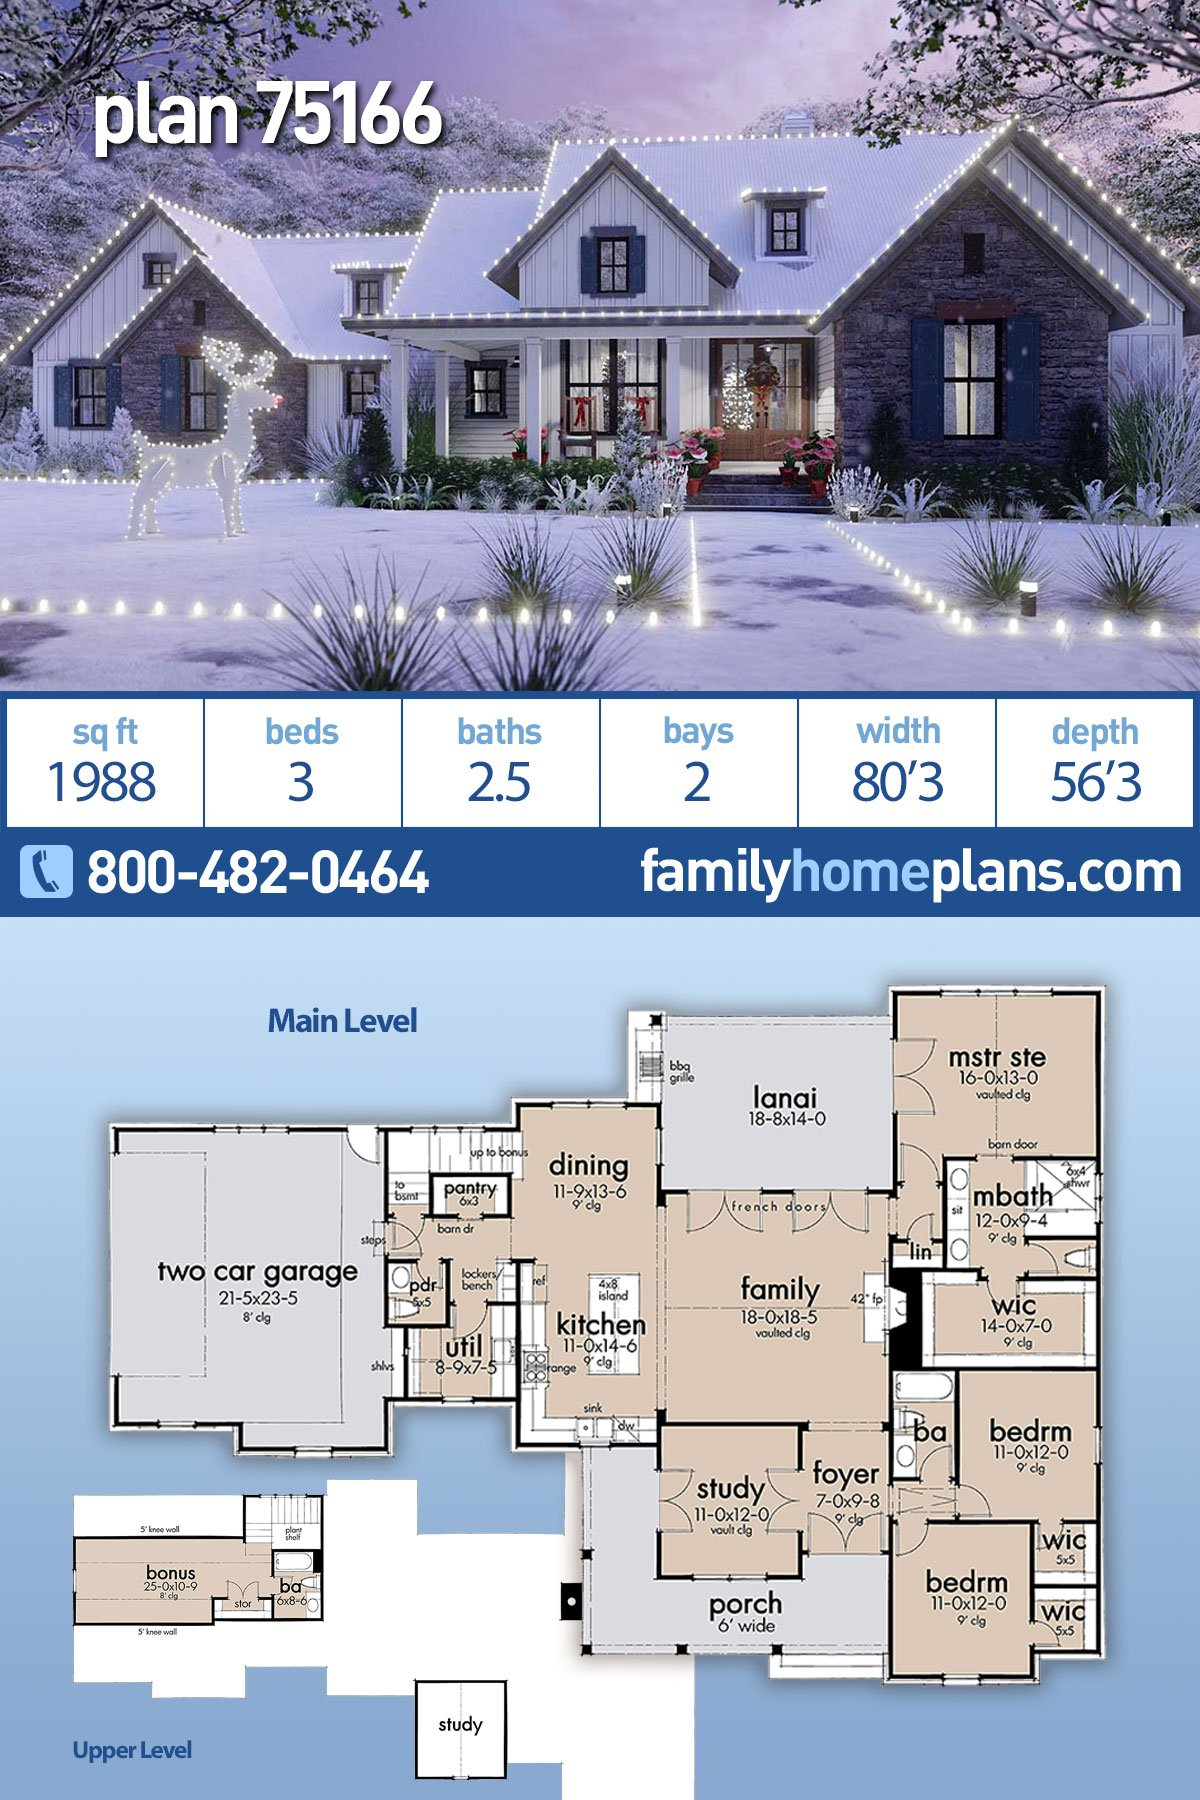 Cottage, Modern Farmhouse, Southern, Traditional House Plan 75166 with 3 Beds, 3 Baths, 2 Car Garage